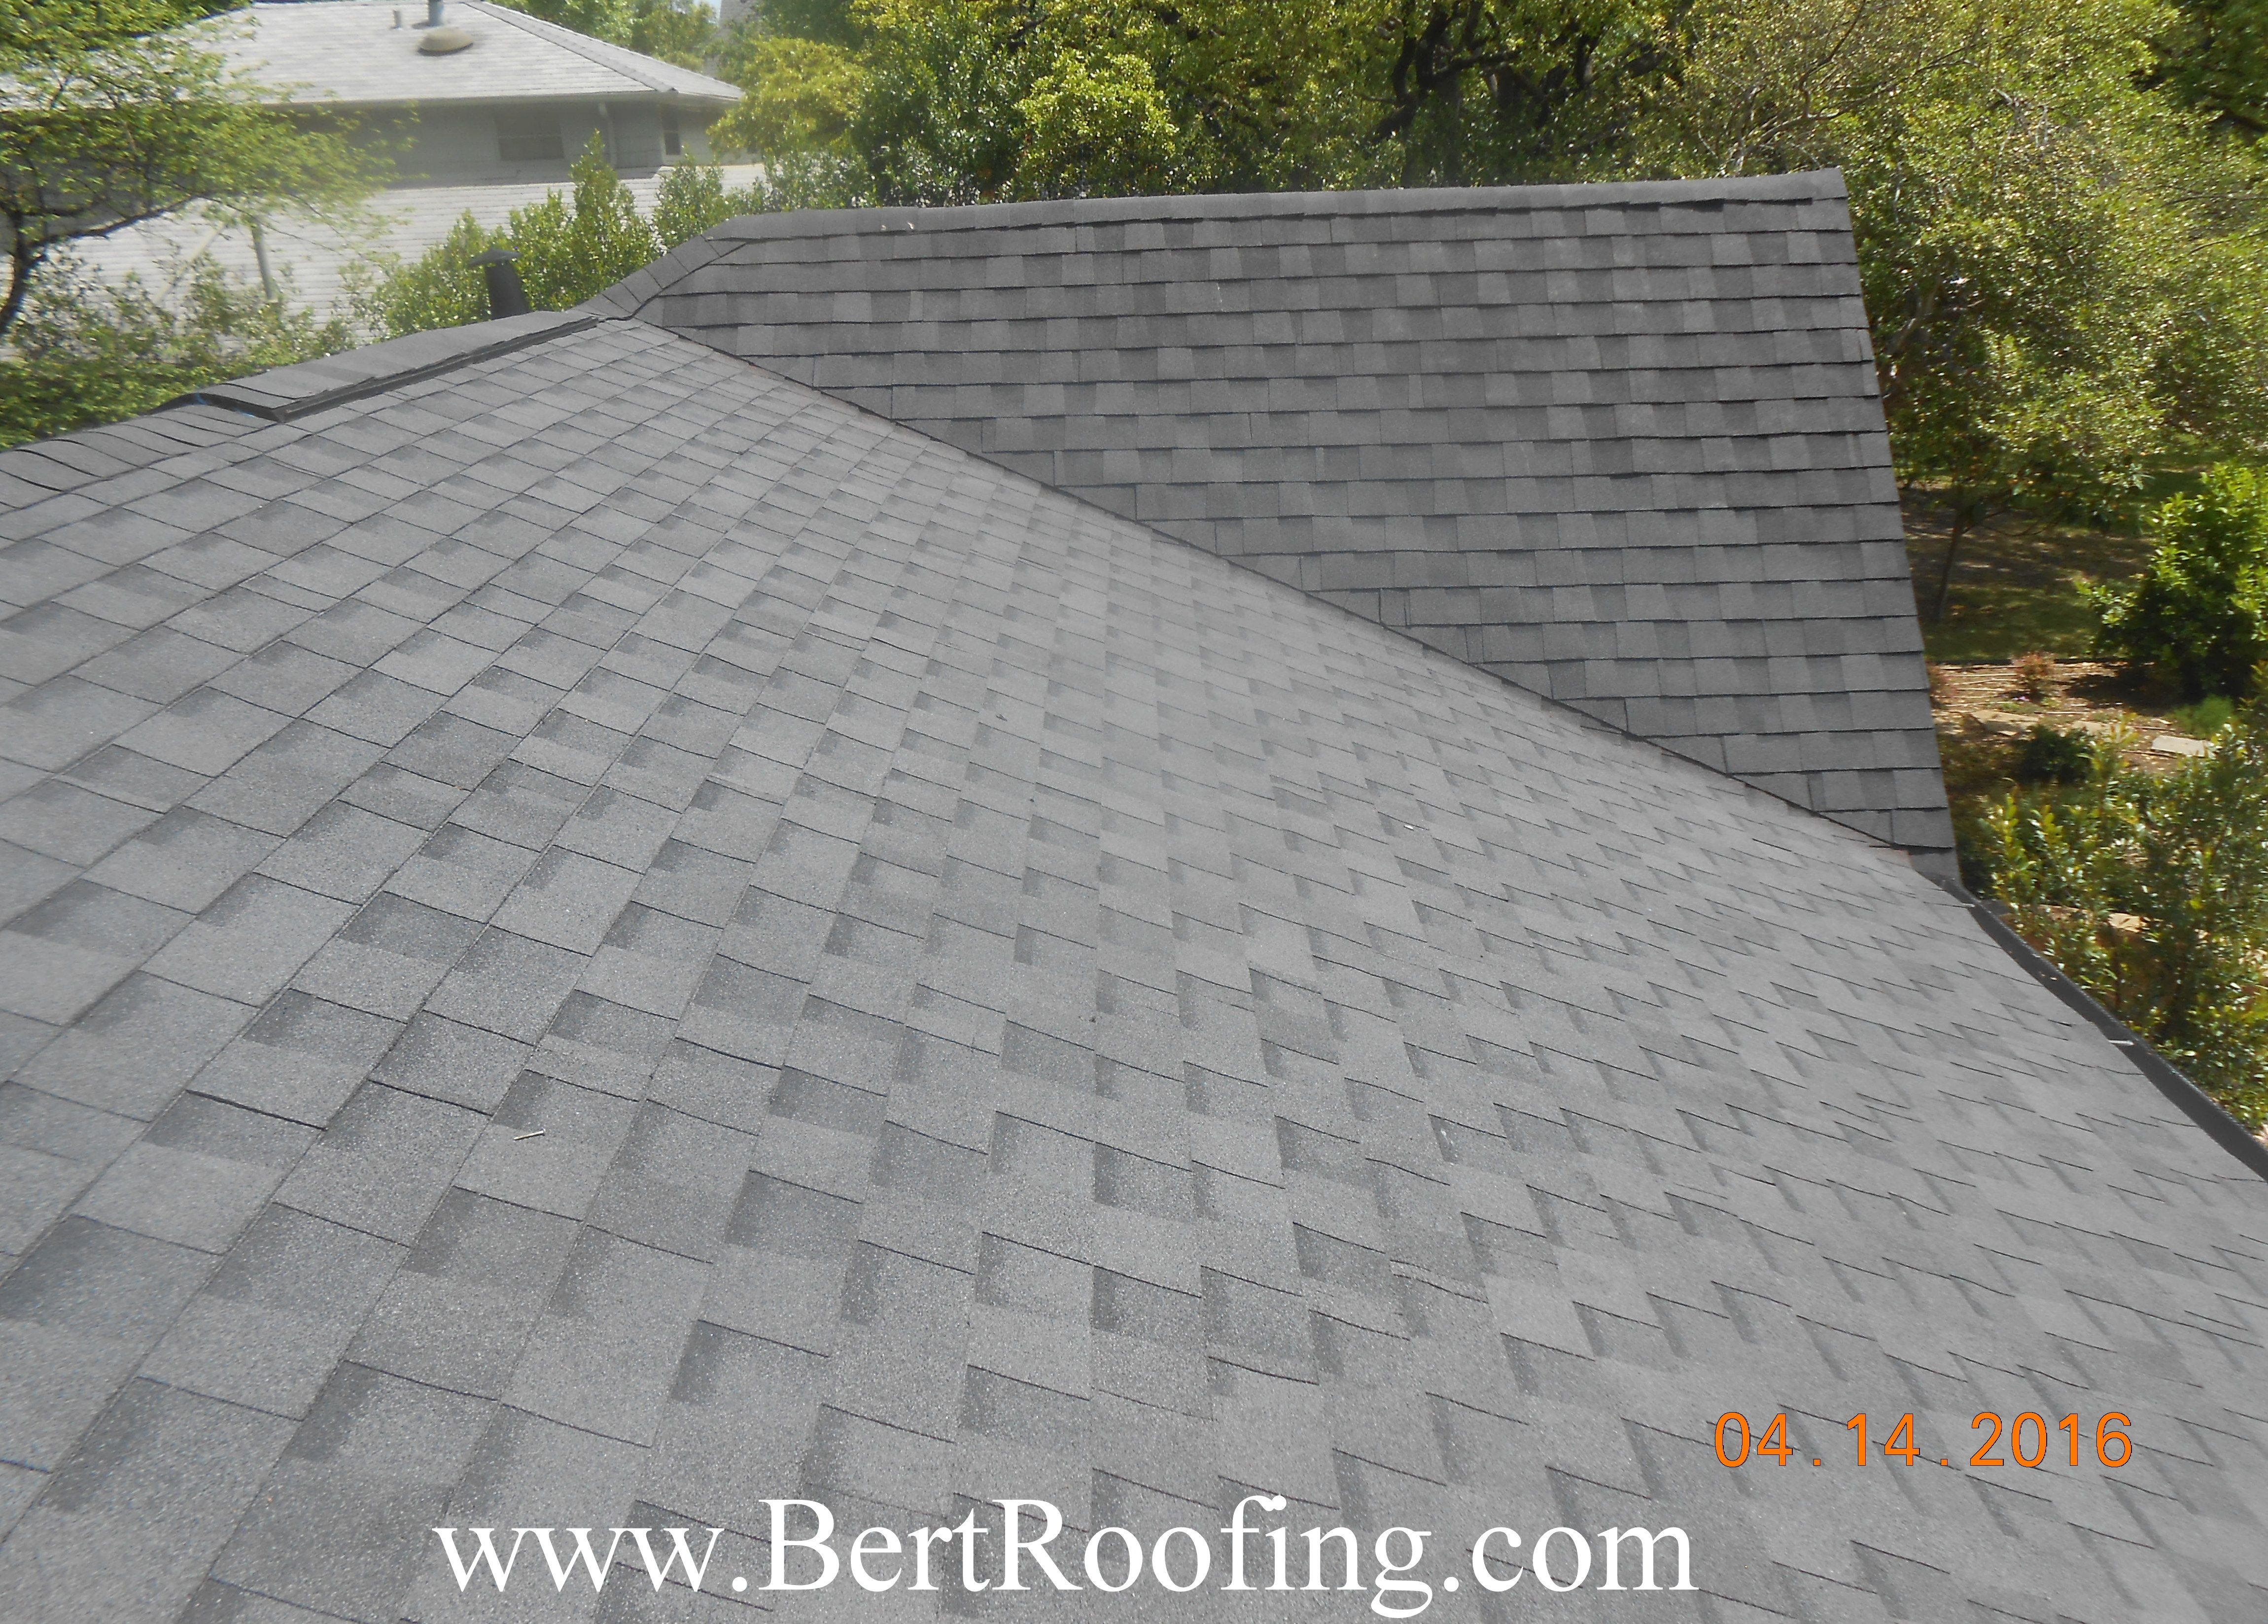 Certainteed Landmark Composition Shingle Color Moire Black Installed By Bert Roofing Inc Of Dallas In Wylie On Ap Roofing Composition Shingles Exterior Paint